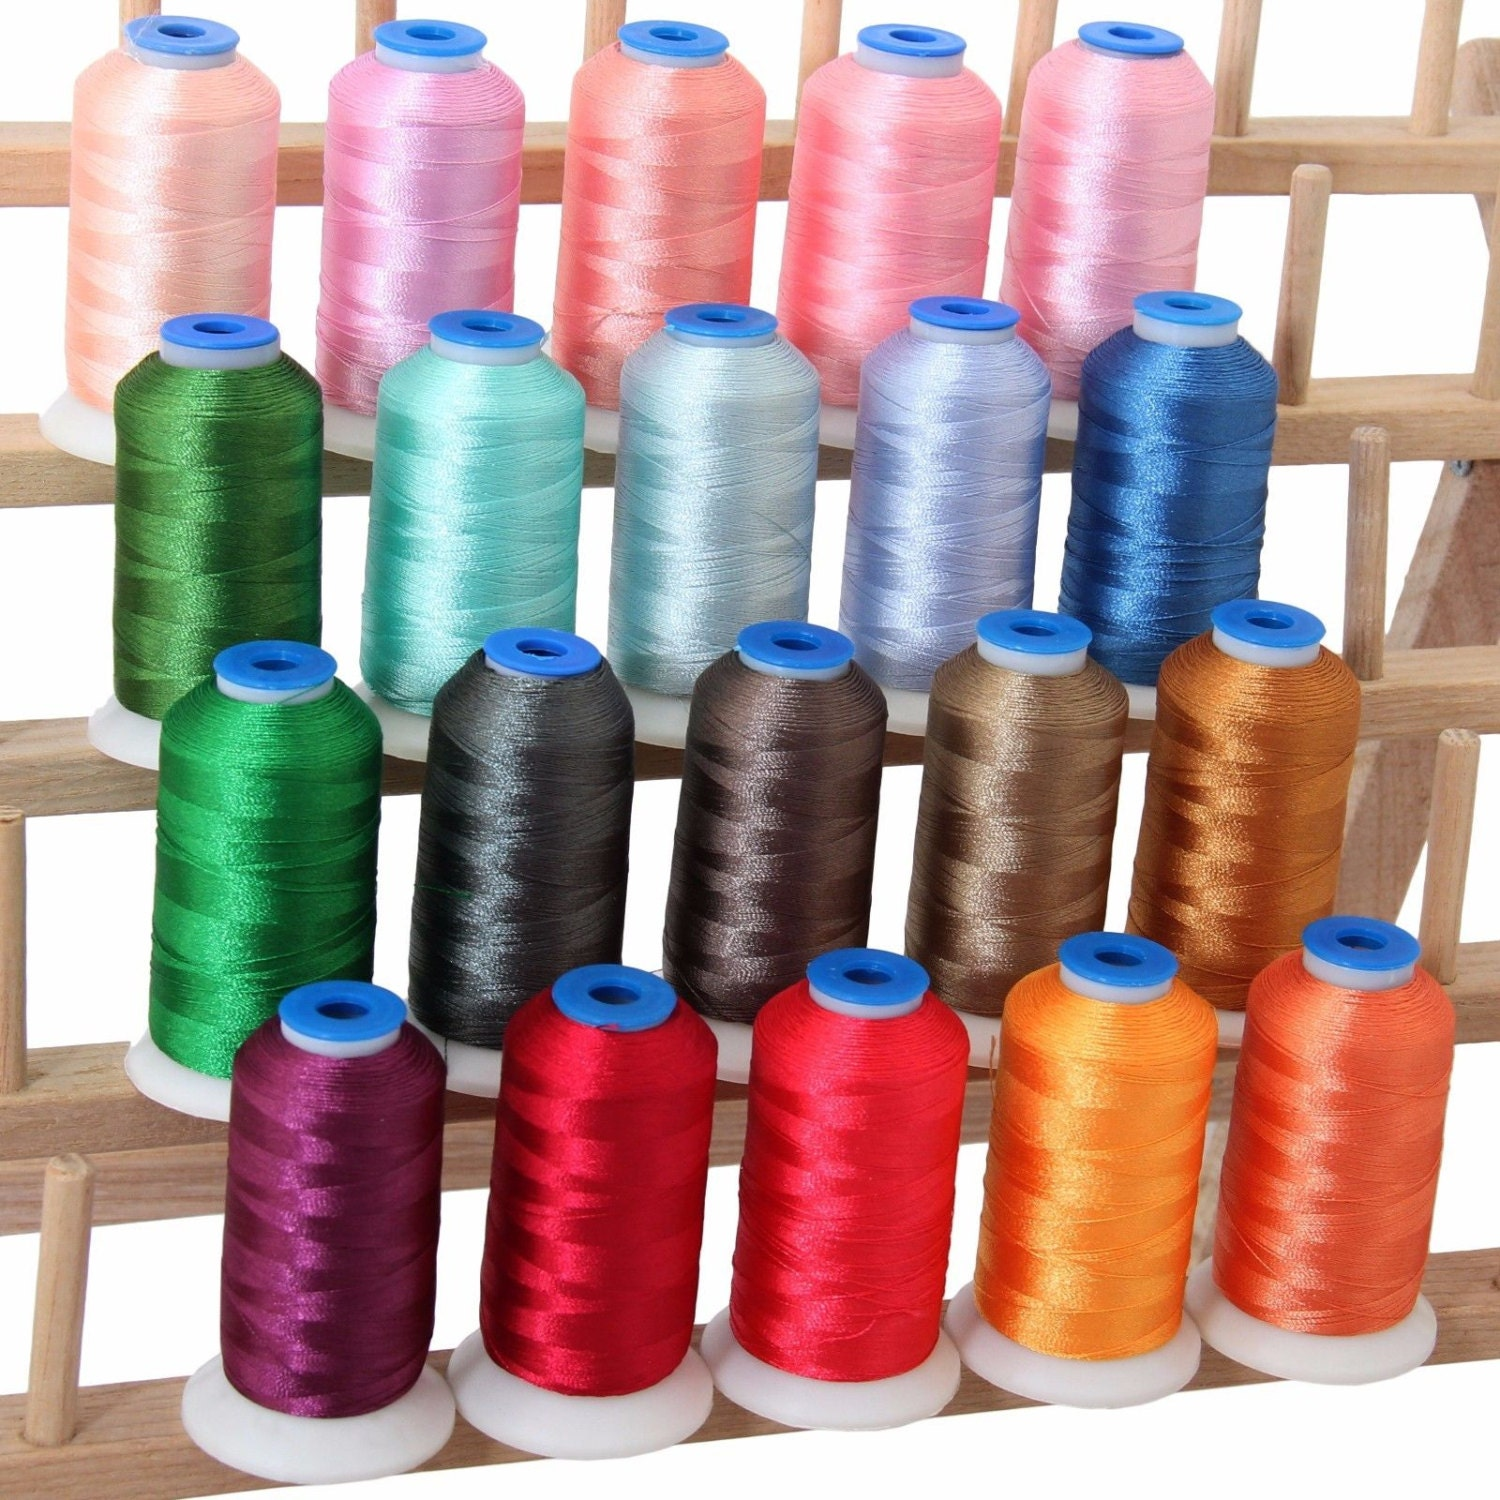 Polyester Machine Embroidery Thread Set 20 Pastel Colors